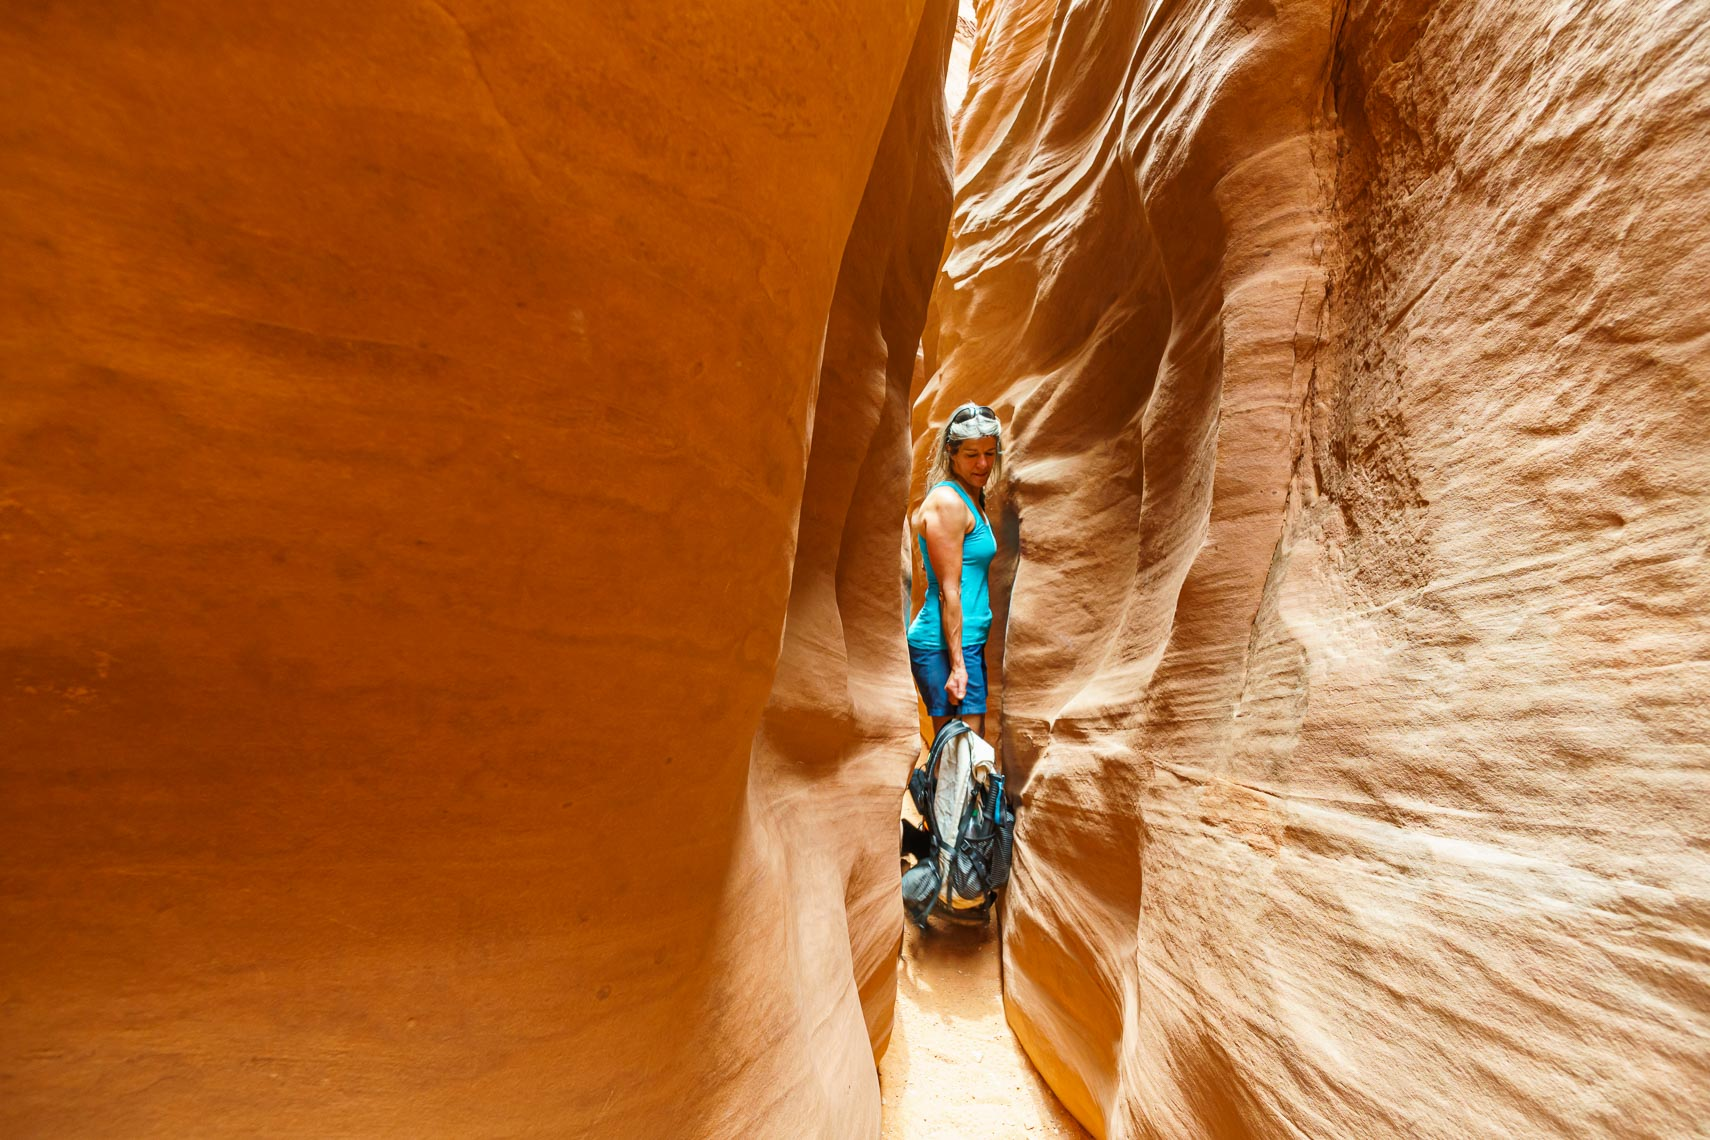 Slot Canyon Adventure Hiking | Michael DeYoung